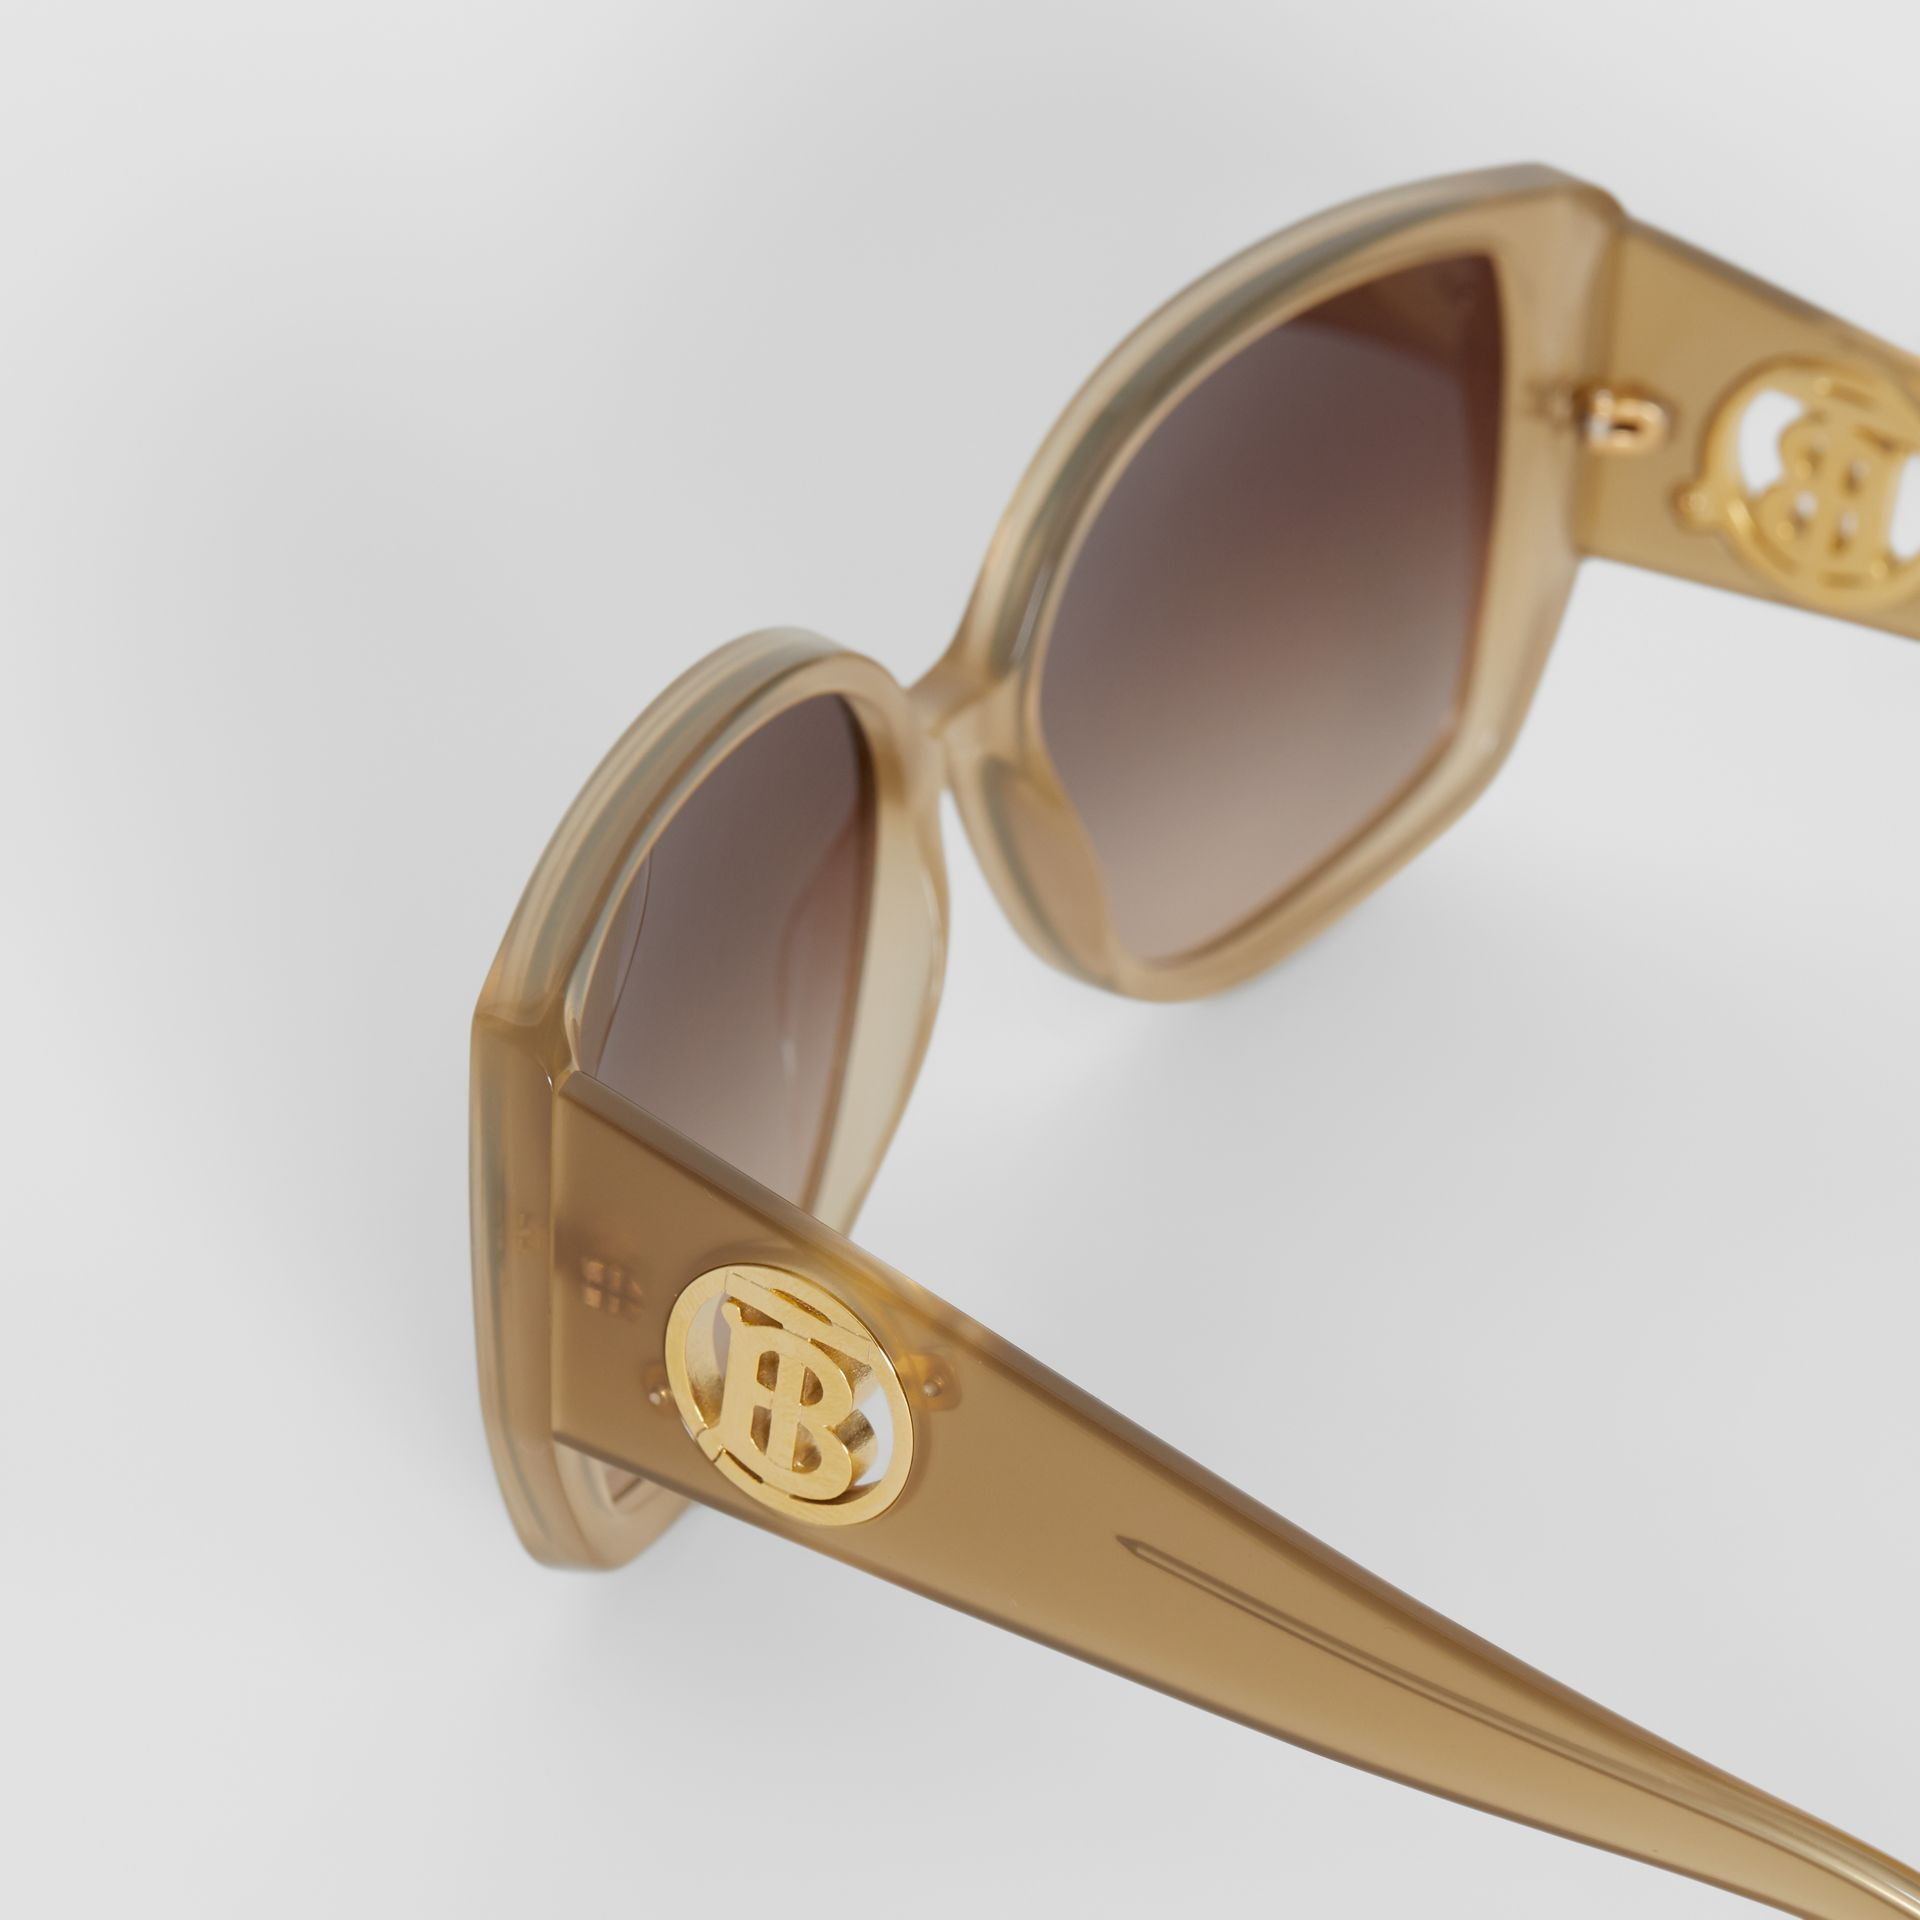 Oversized Butterfly Frame Sunglasses in Beige - Women | Burberry - gallery image 5